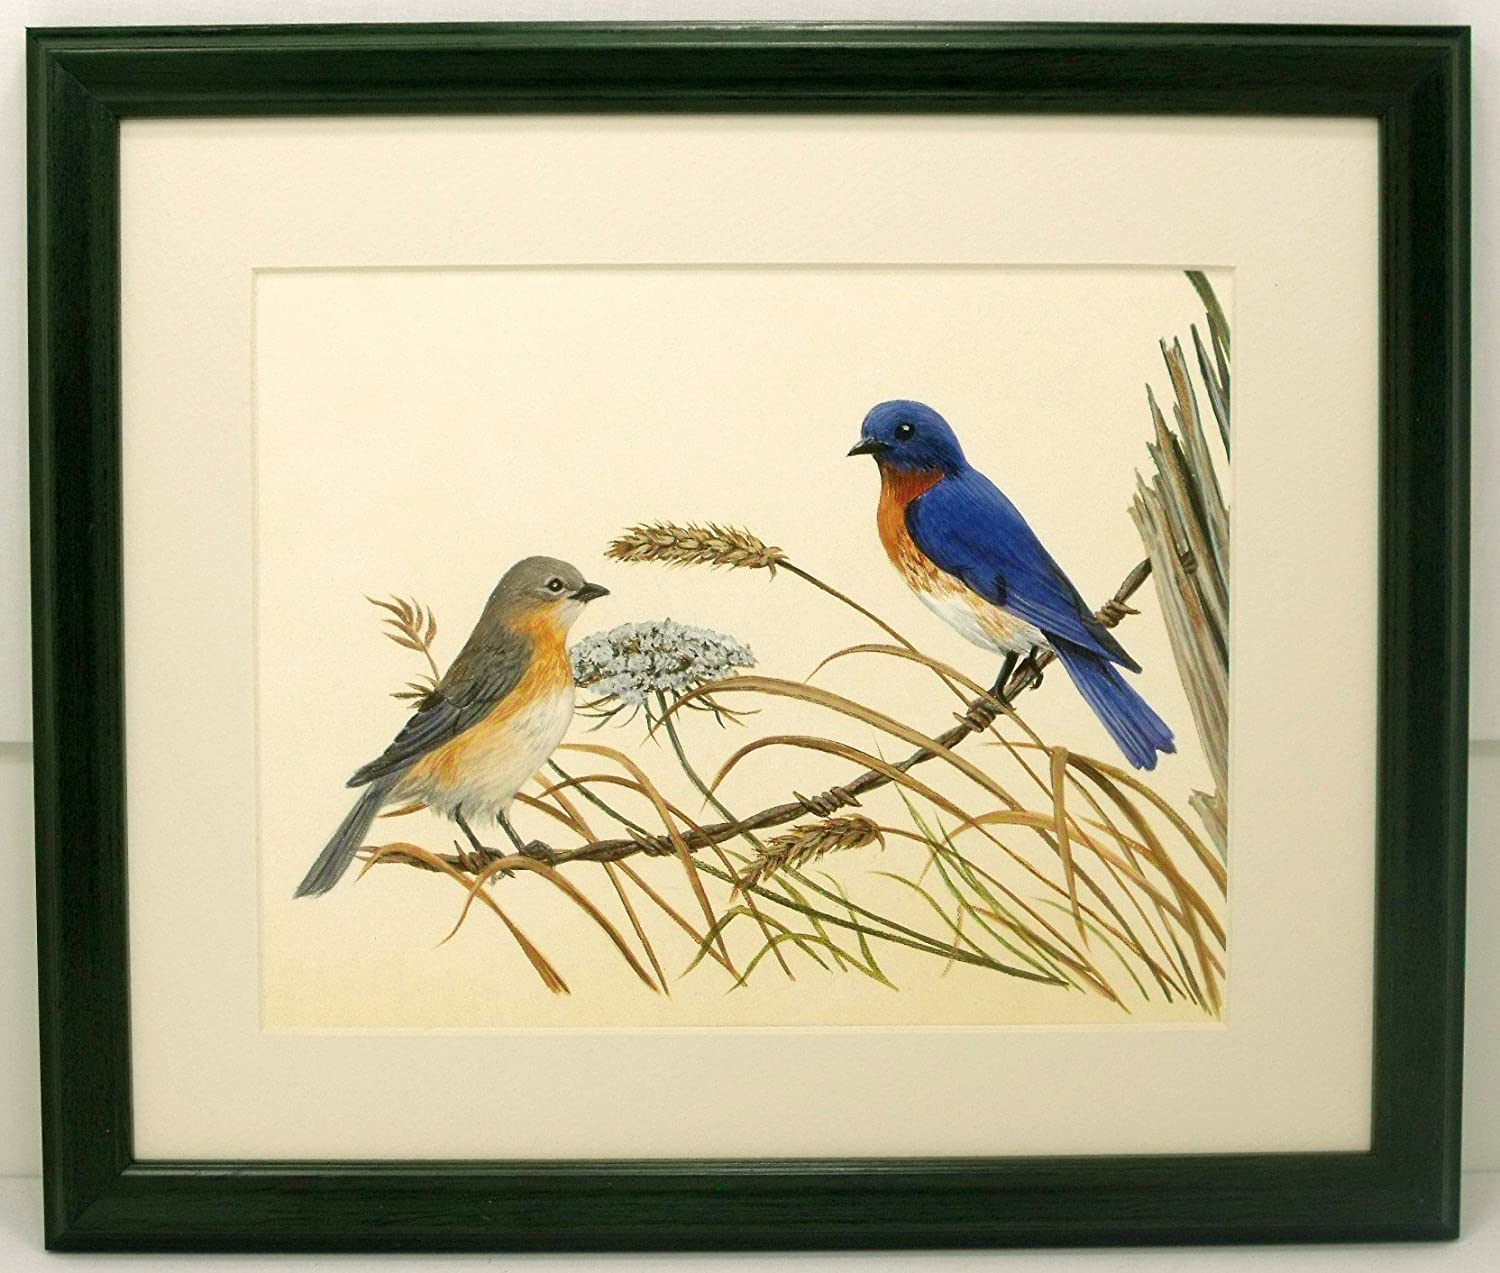 Amazon audubon bluebird bird print 10 x 12 wildlife wall amazon audubon bluebird bird print 10 x 12 wildlife wall decor other products posters prints amipublicfo Image collections